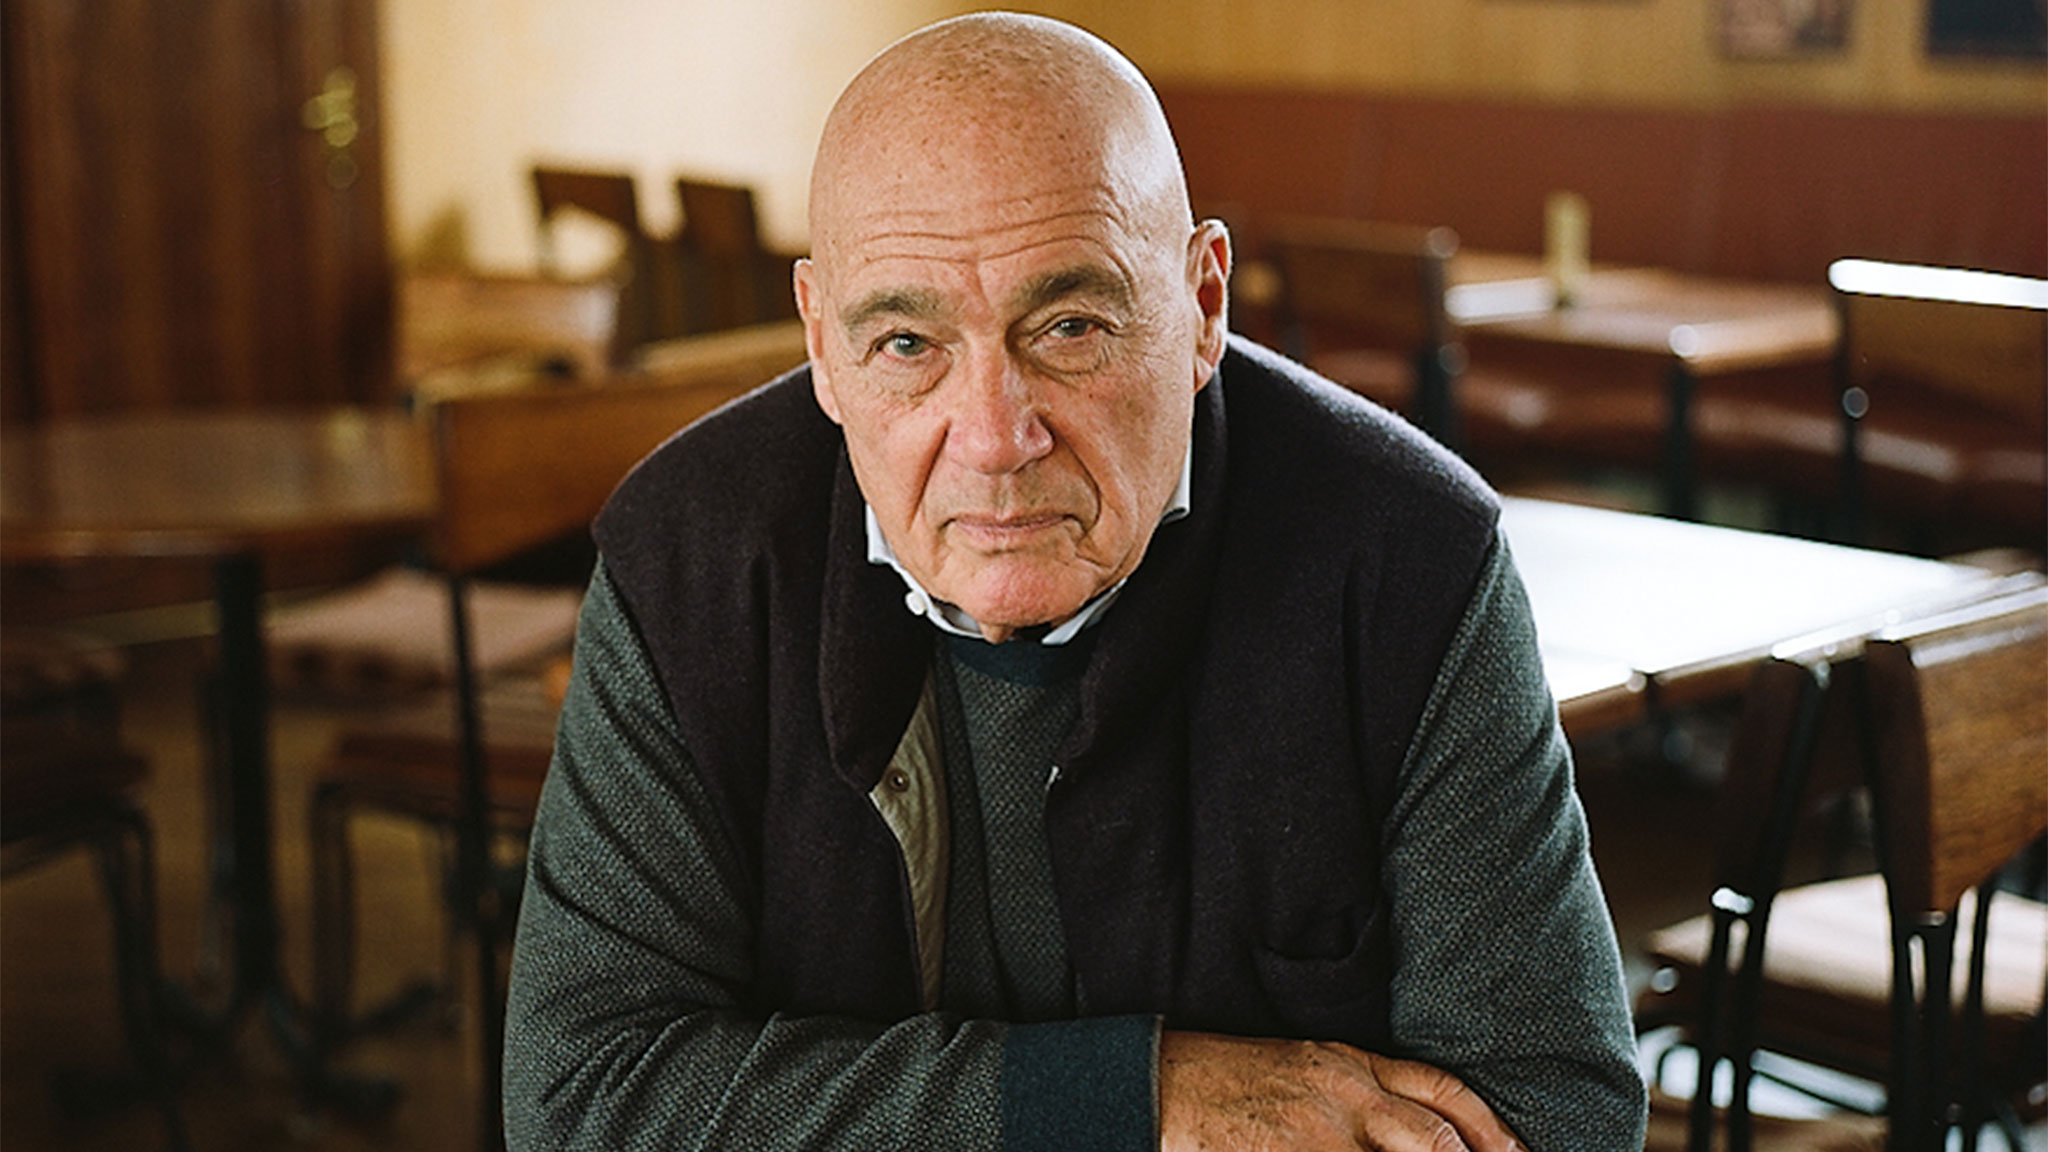 Vladimir Pozner: the 'face' of Russia | Financial Times